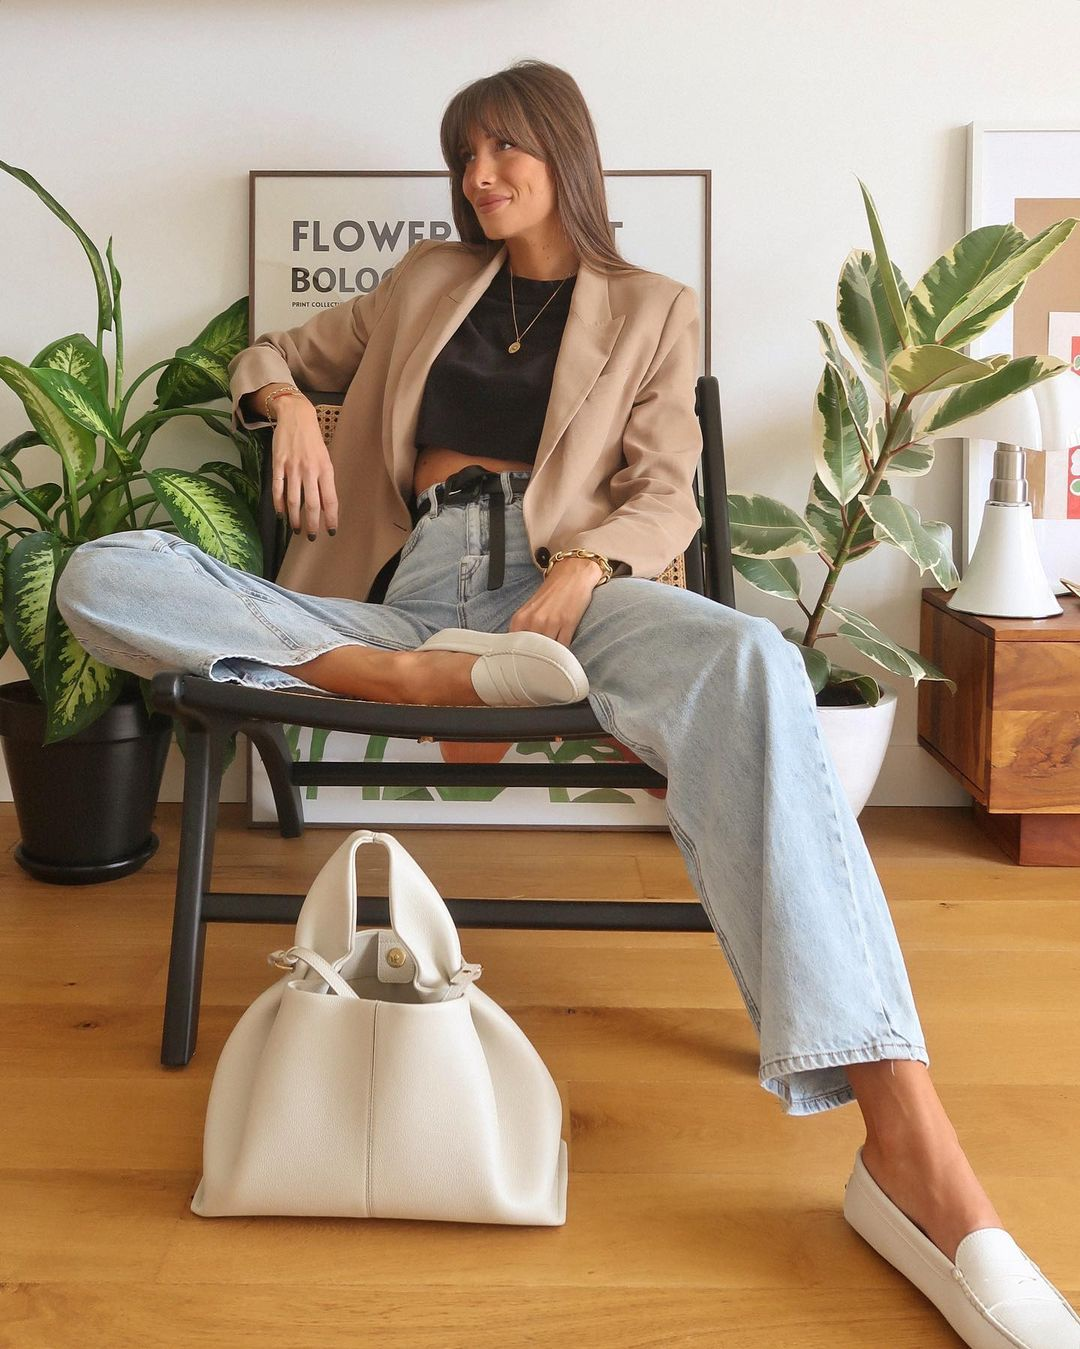 16 Pairs of Loafers and Flats That You Can Wear Forever — @juliesfi Instagram Outfit Idea